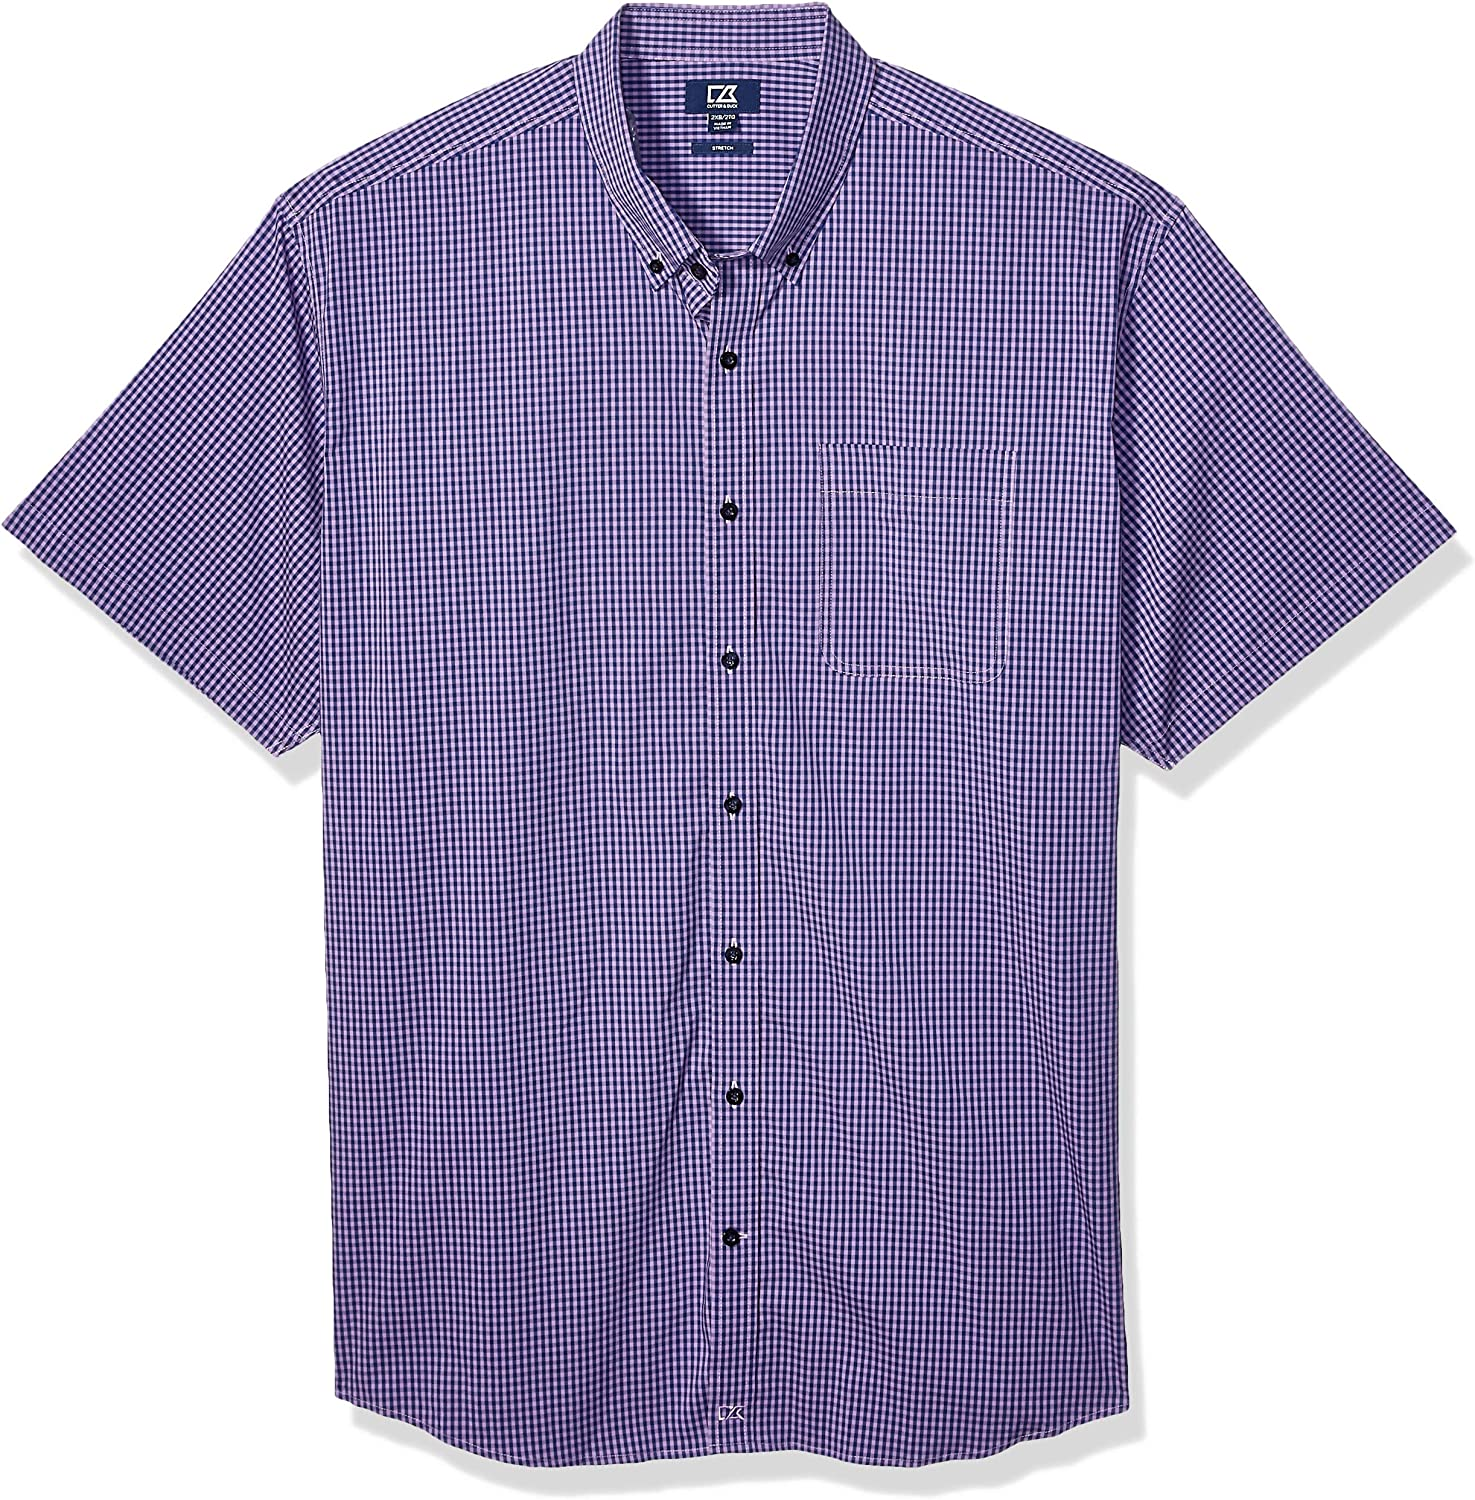 Cutter Buck Men's Big Tall Short Gingham Sleeve Anchor Butto Max 70% OFF Houston Mall